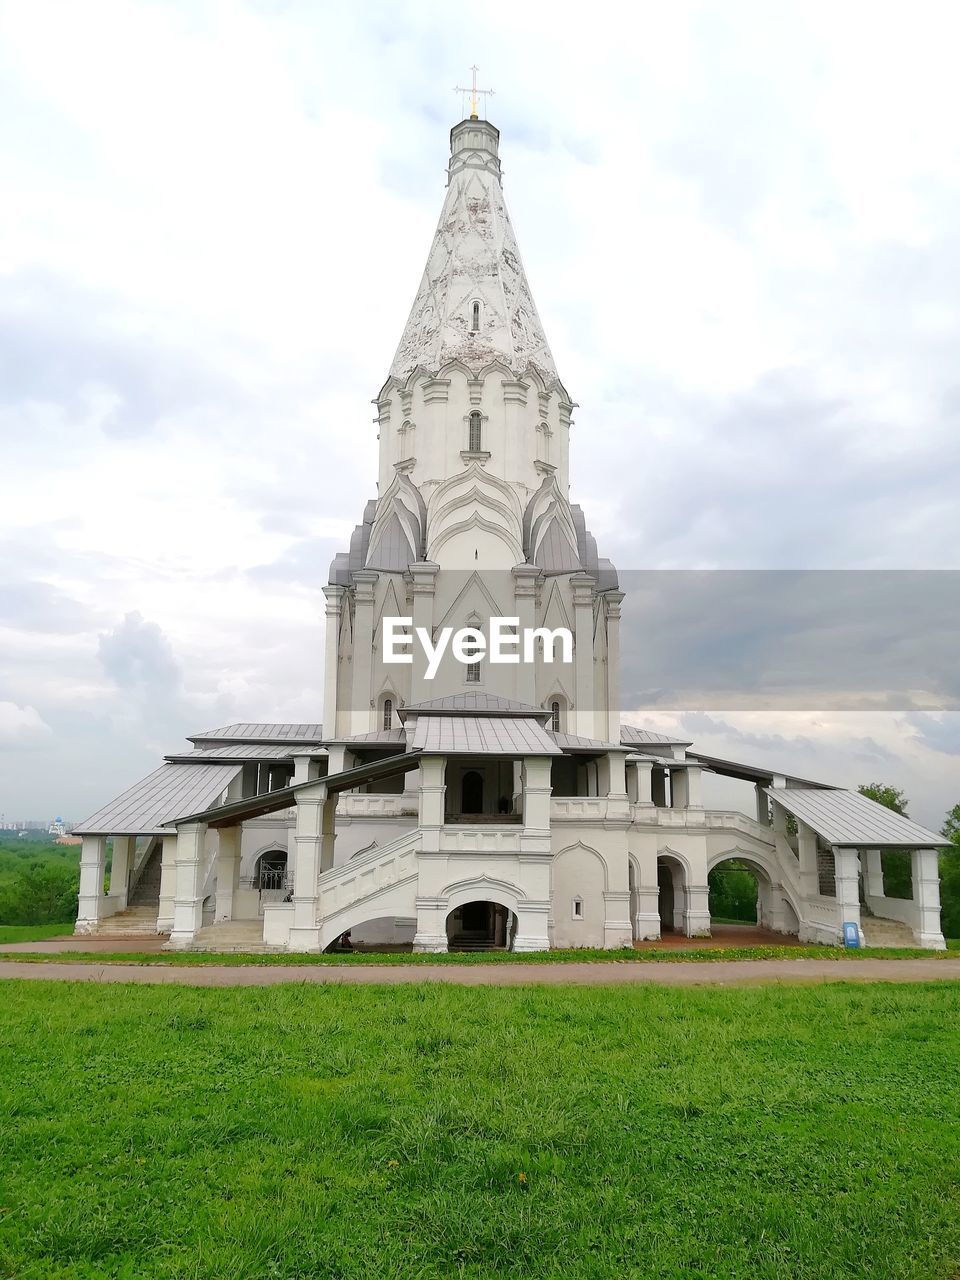 VIEW OF TEMPLE AGAINST BUILDING